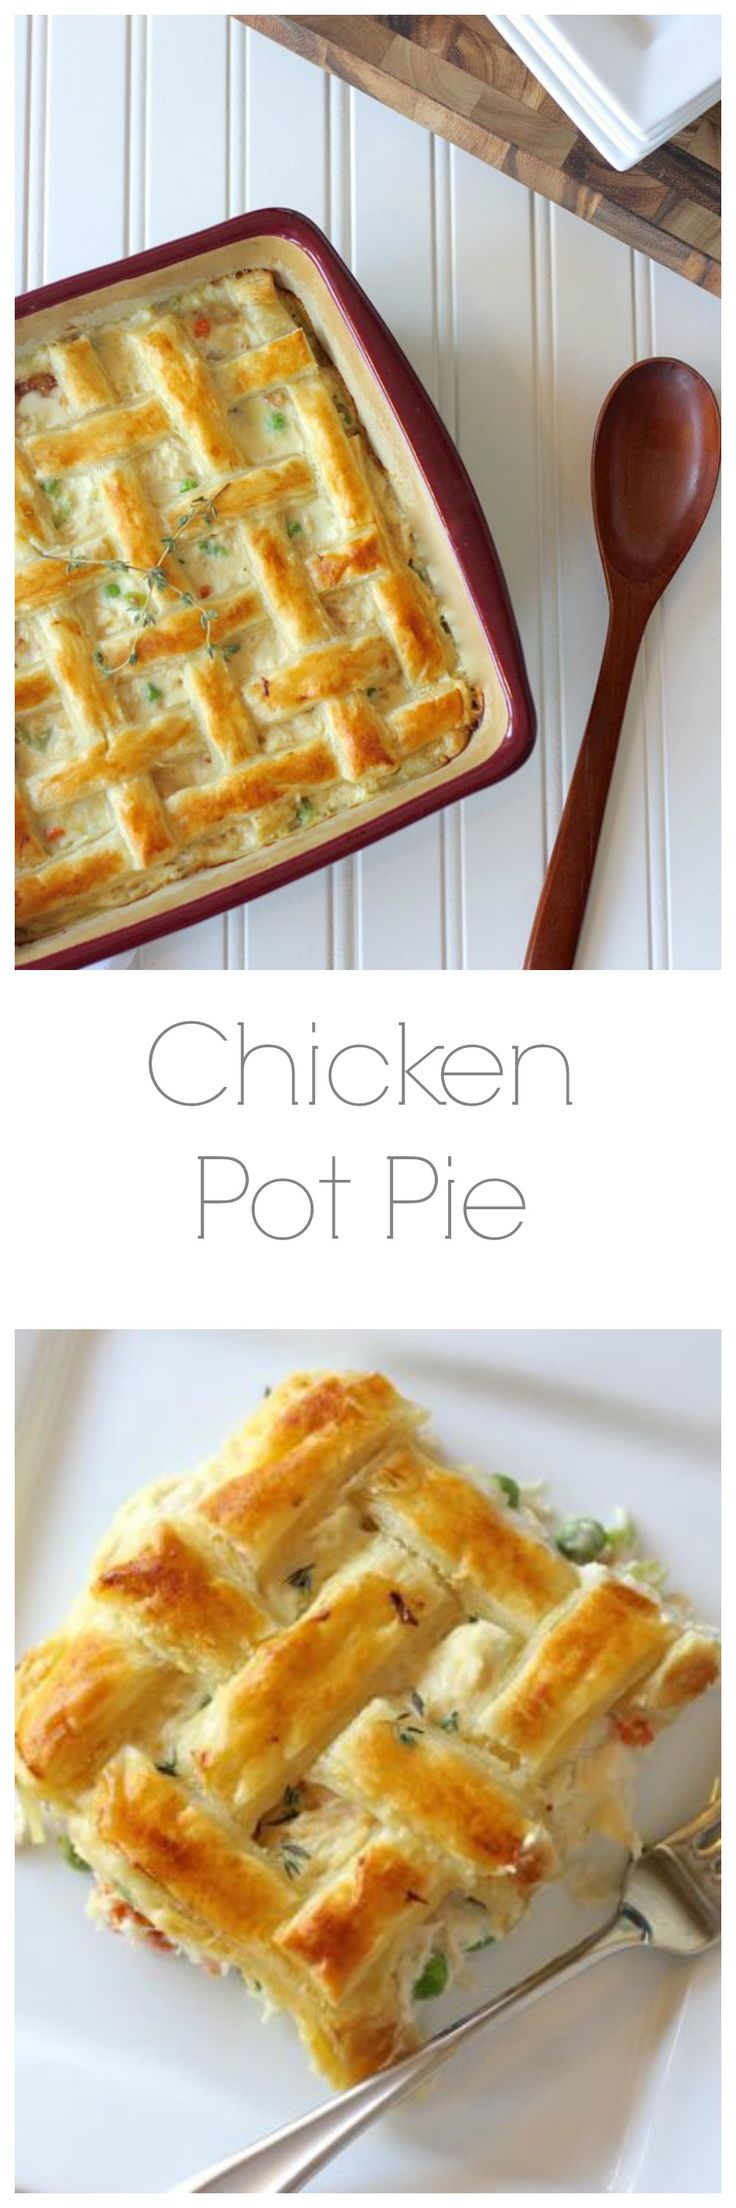 Chicken Pot Pie with three shortcuts to make it quick and easy!